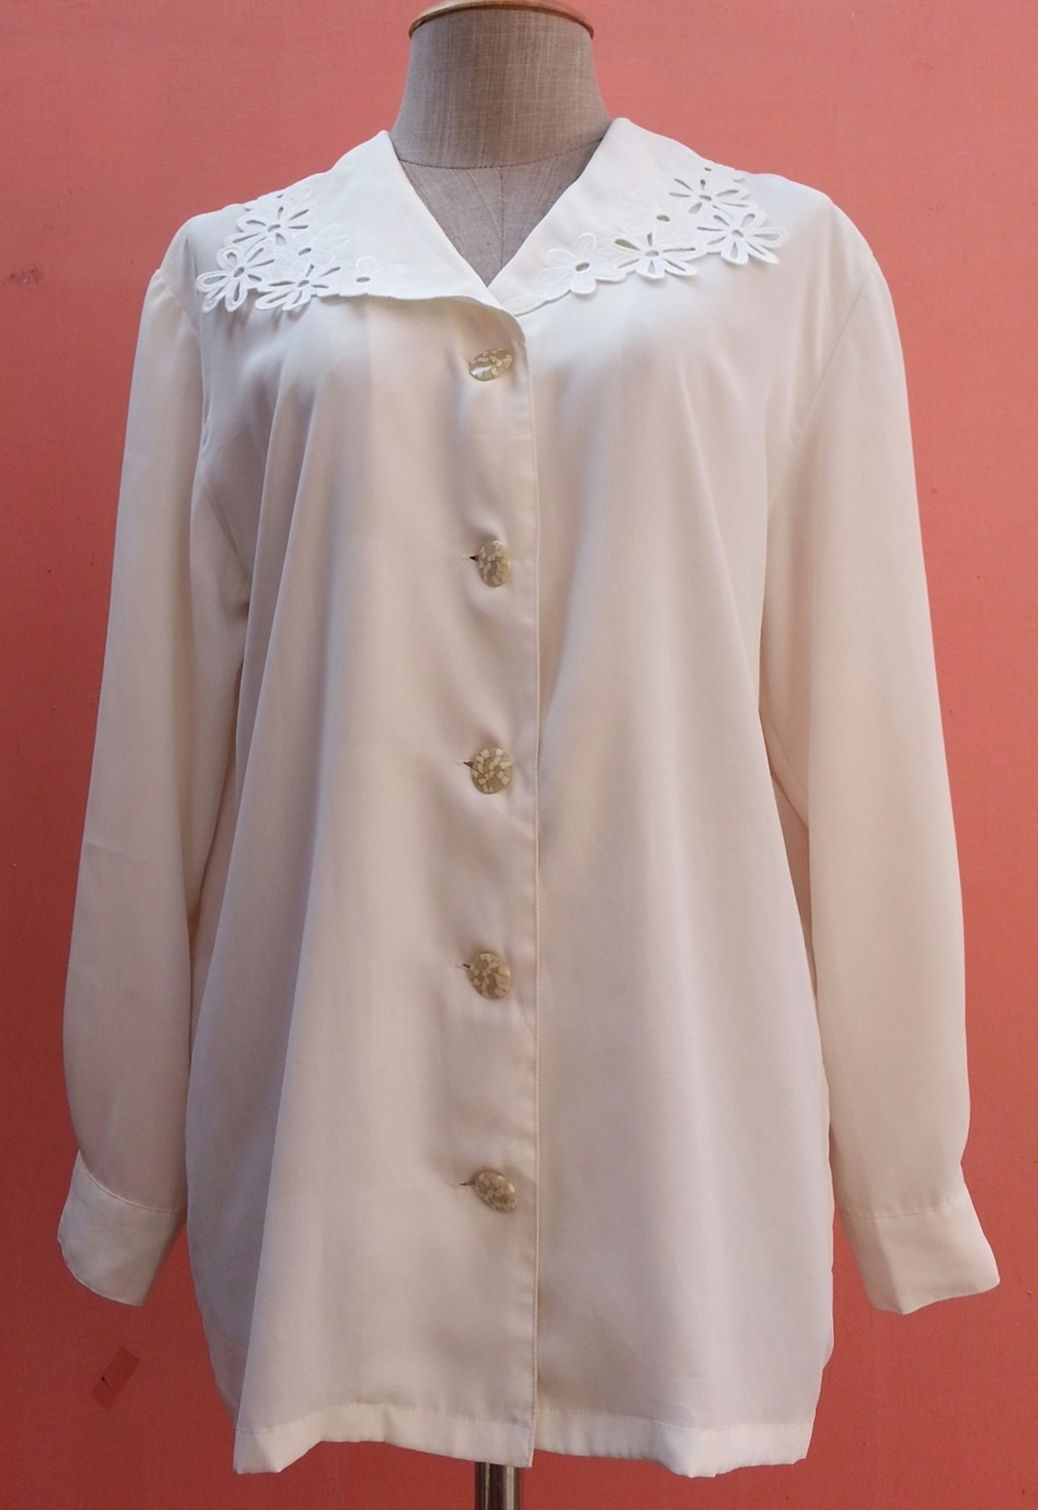 7642d939d1300 White Blouse Boho Shirt 80s Blouse Lace Collar Shirt Vintage Blouse 1980s  Clothing Women Button Down Shirt Polyester Shirt Long Sleeve Large